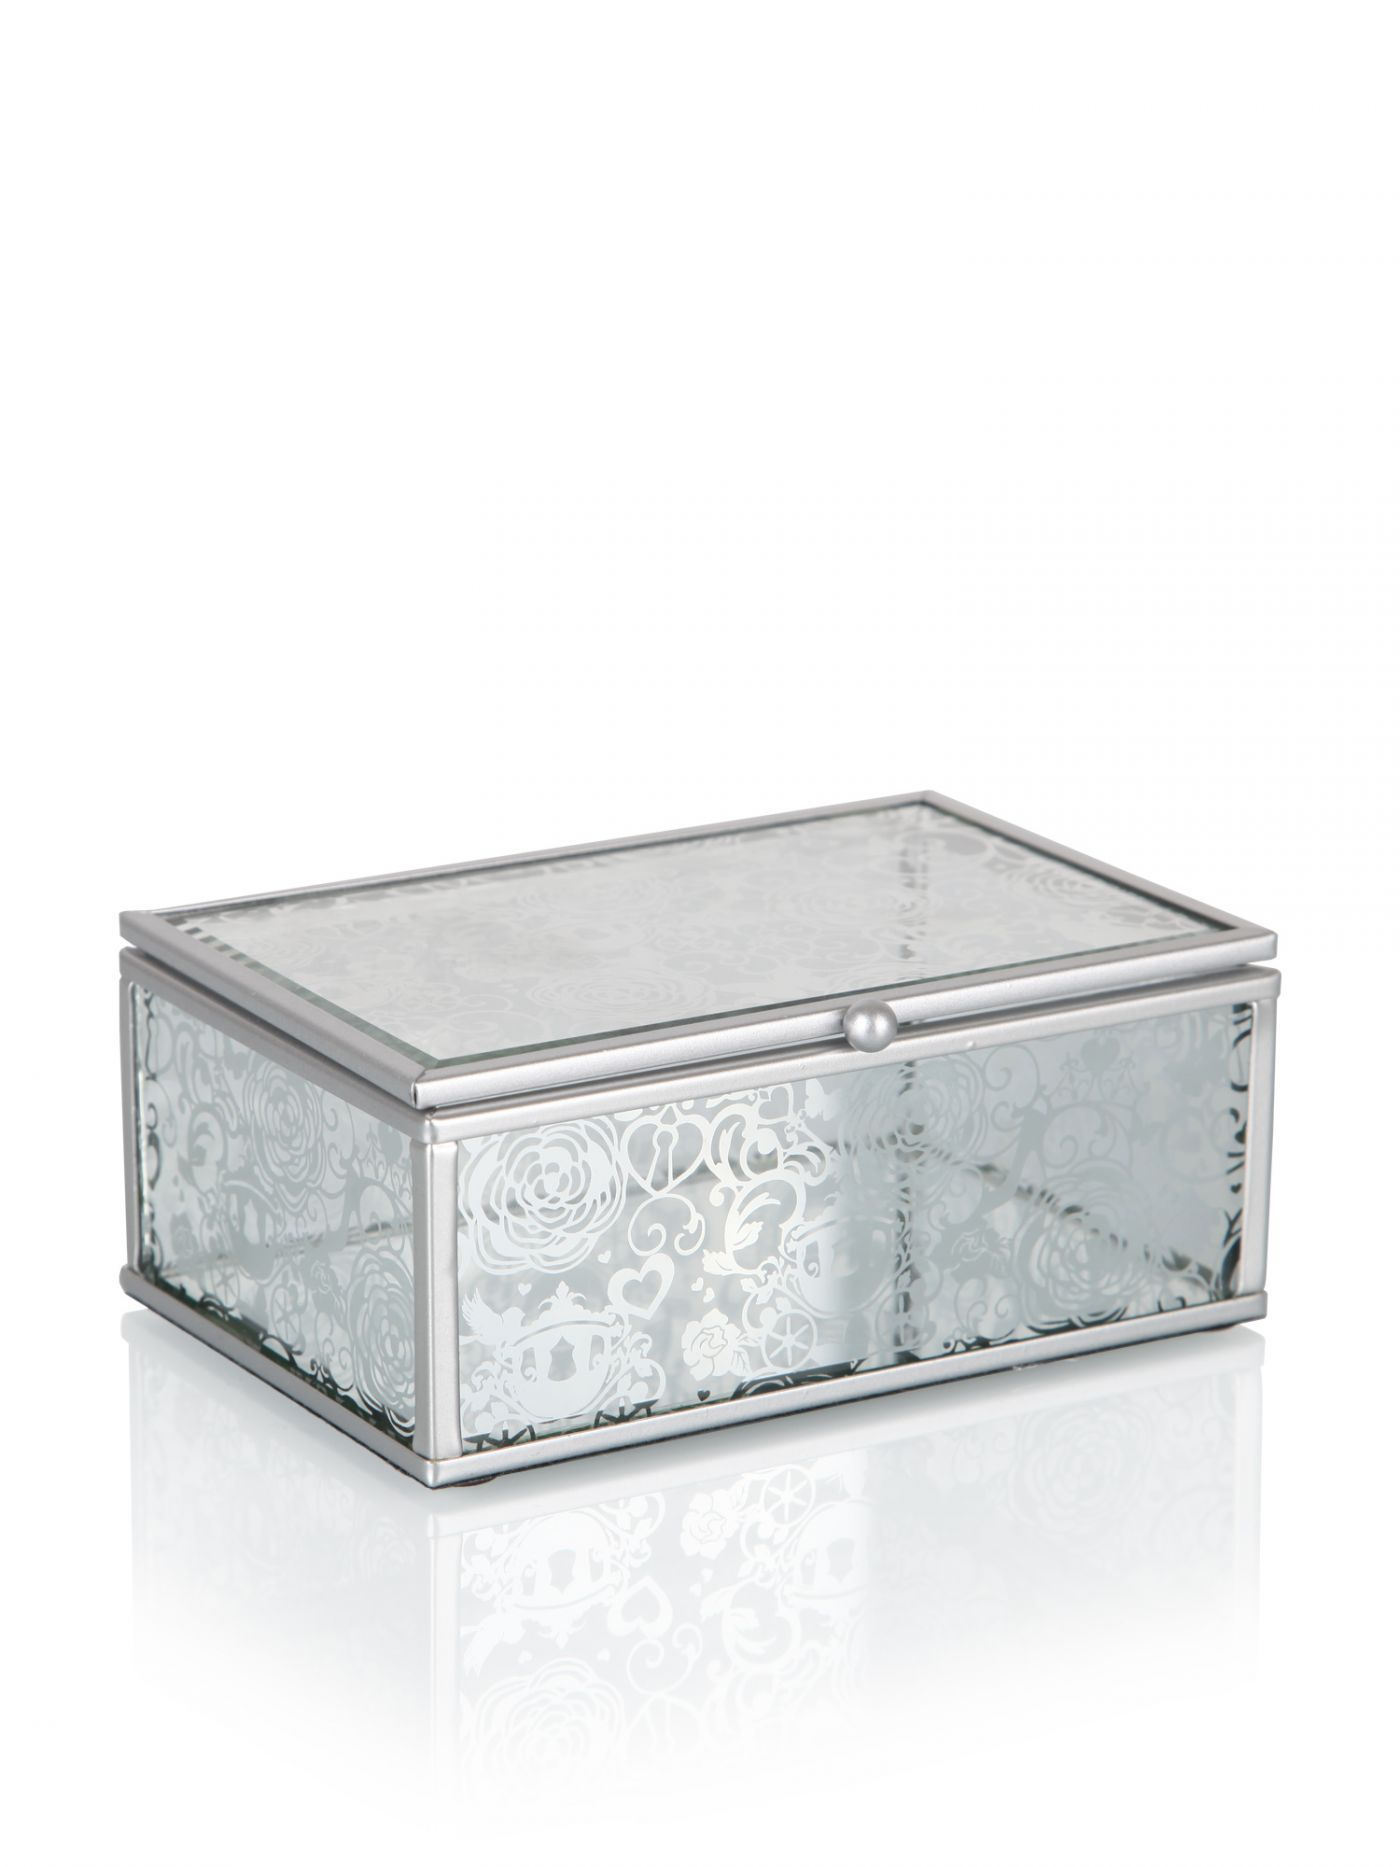 Clinton's wedding keepsake box